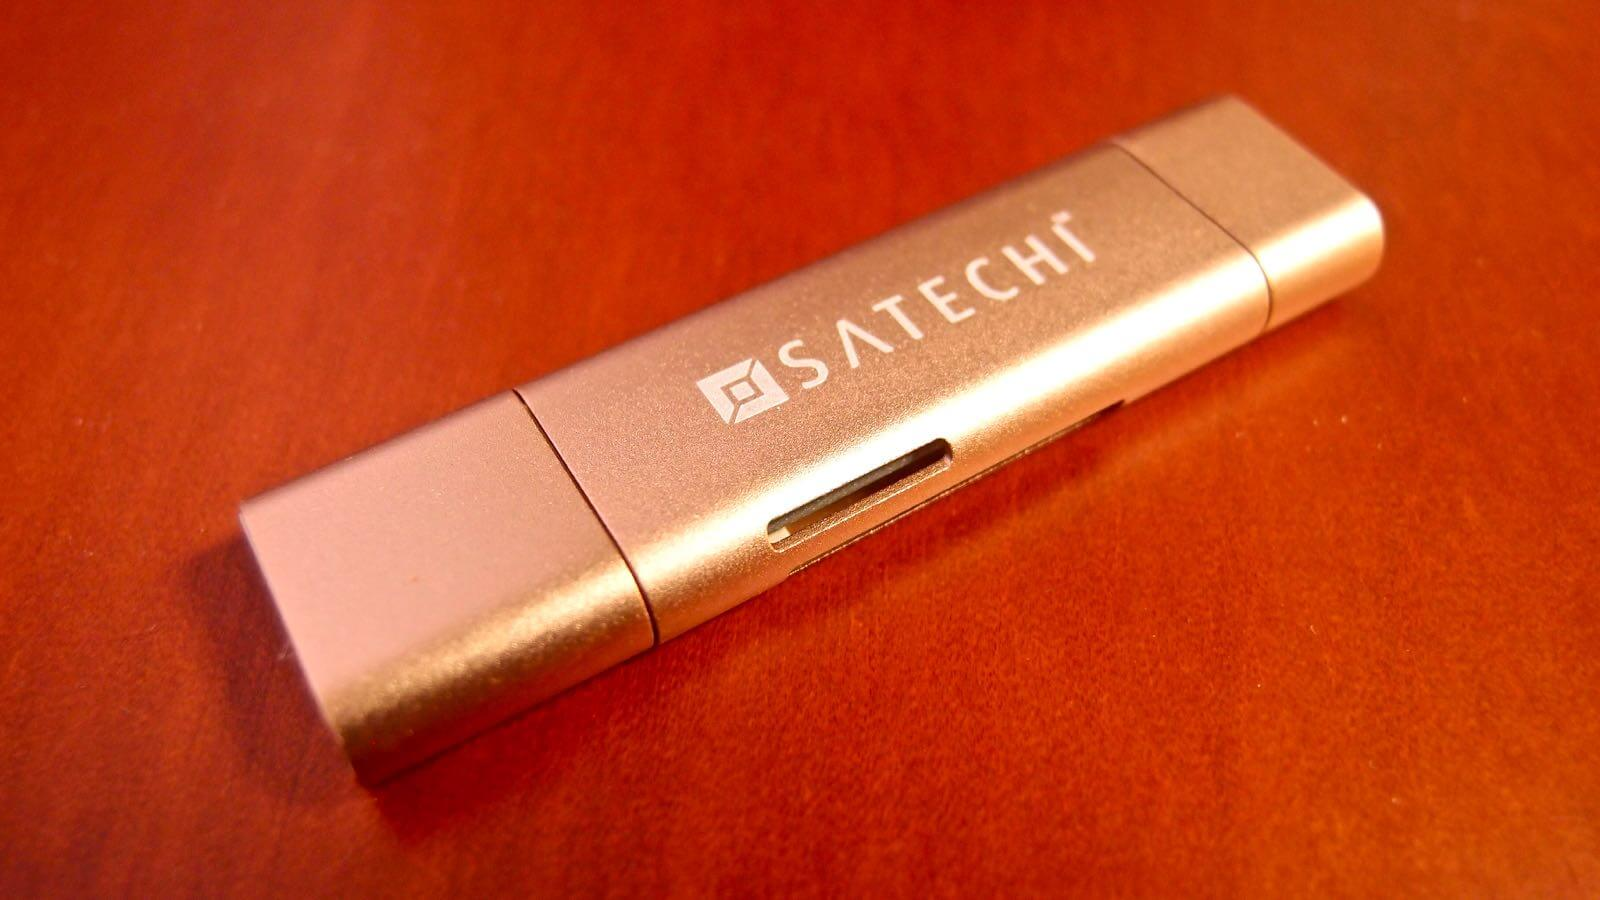 0164 10 SATECHI Type C plus USB3 0 USB Card Reader Review 05